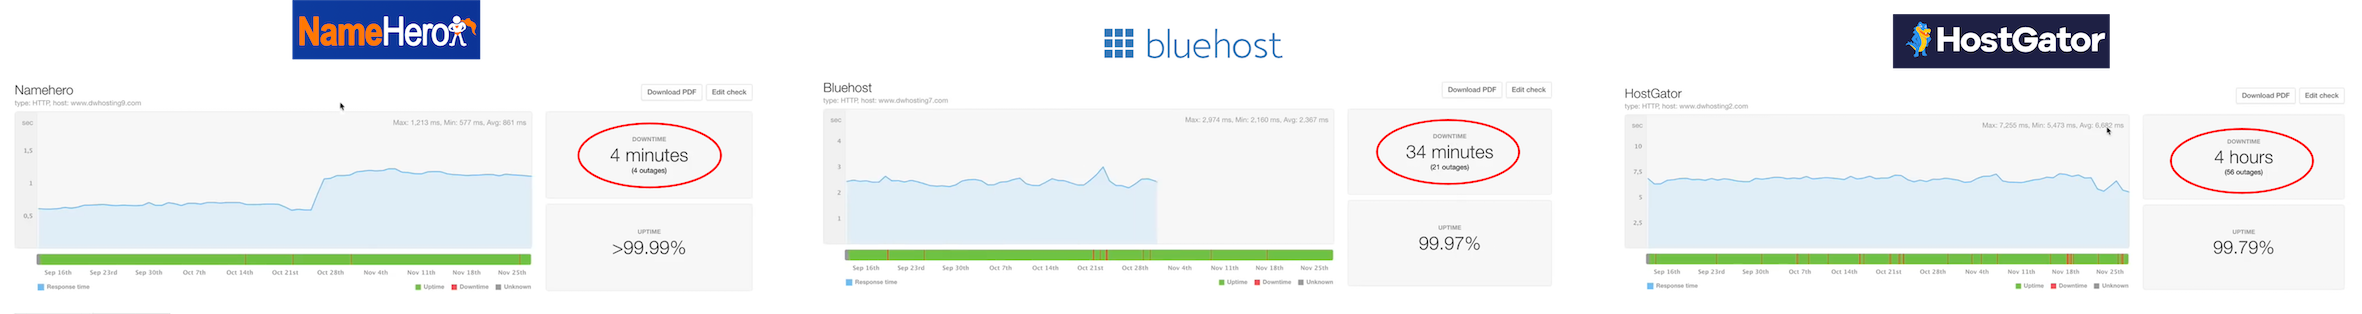 Namehero downtime compared with Bluehost and Hostgator